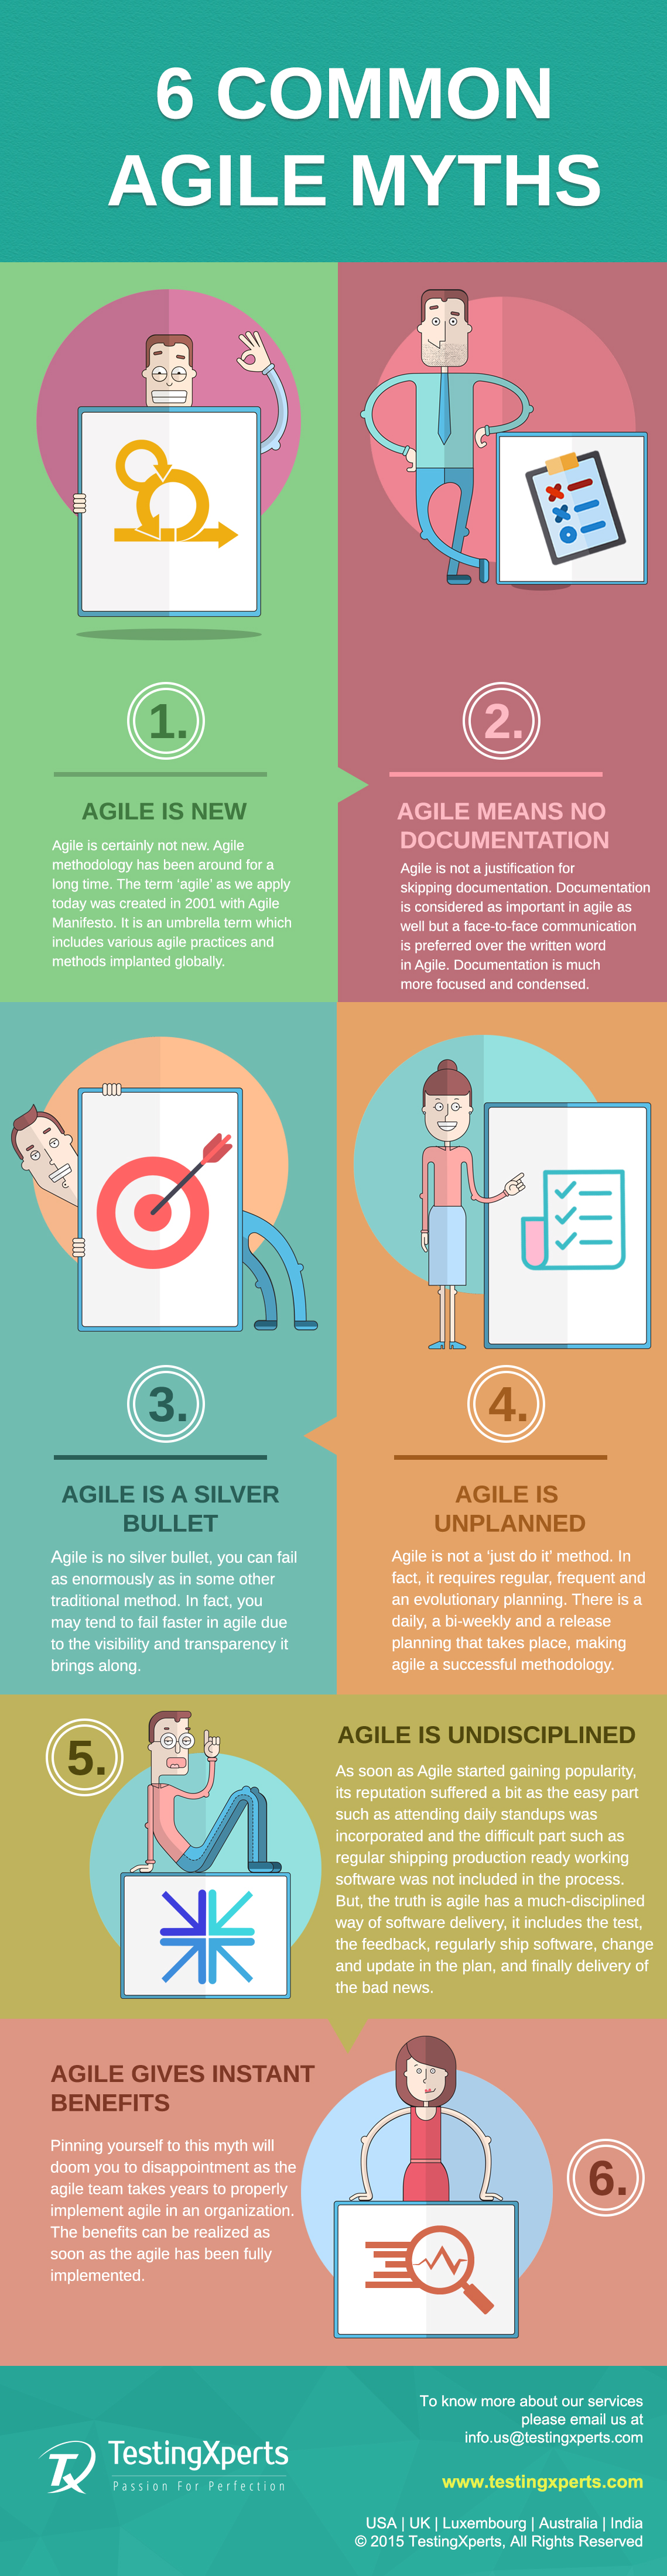 6 Common Agile Myths - Infographic